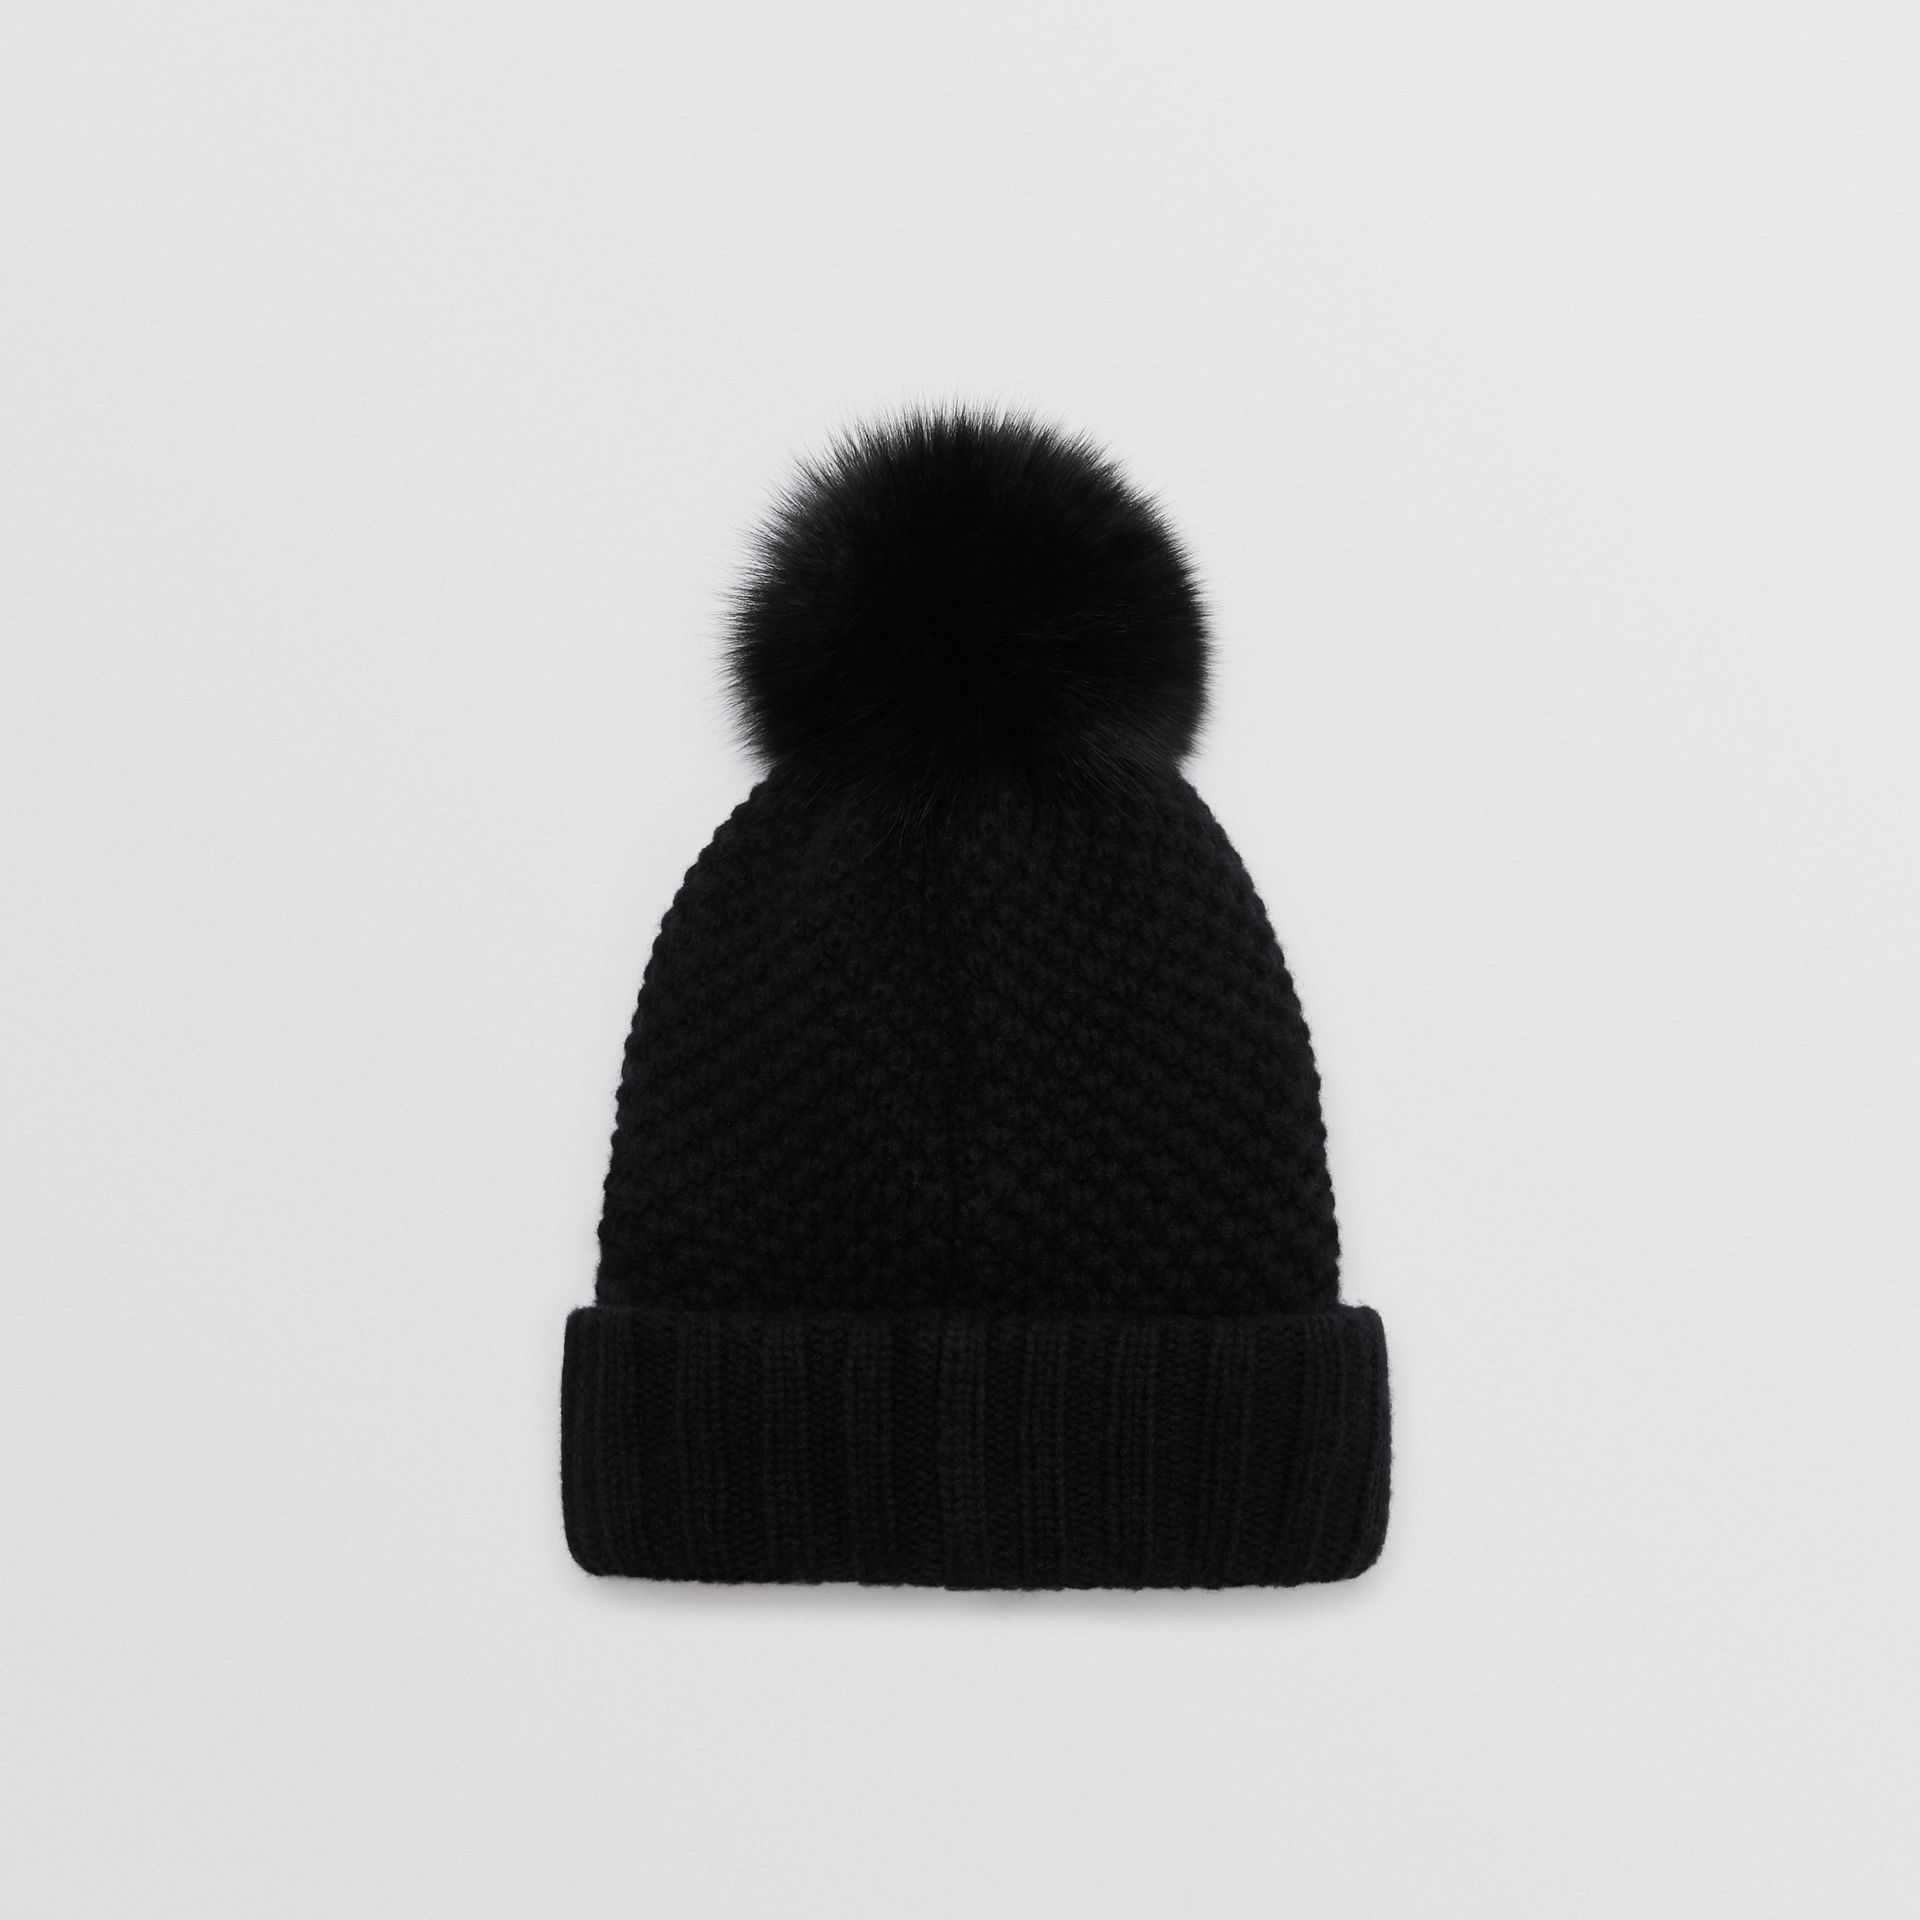 Fur Pom-Pom Beanie in Black - Women | Burberry - gallery image 3